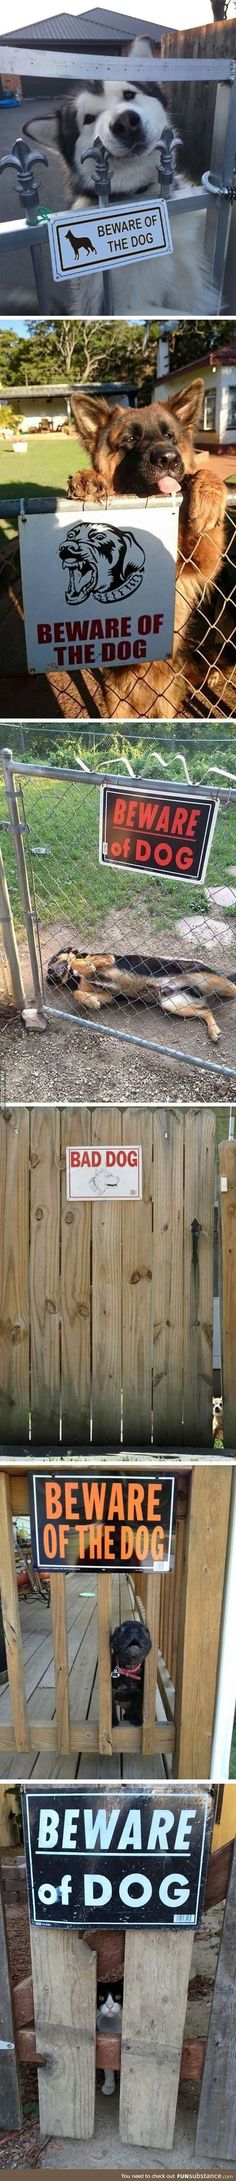 Beware of the dog,jajaja too cute to be true #dogsfunnyshaming